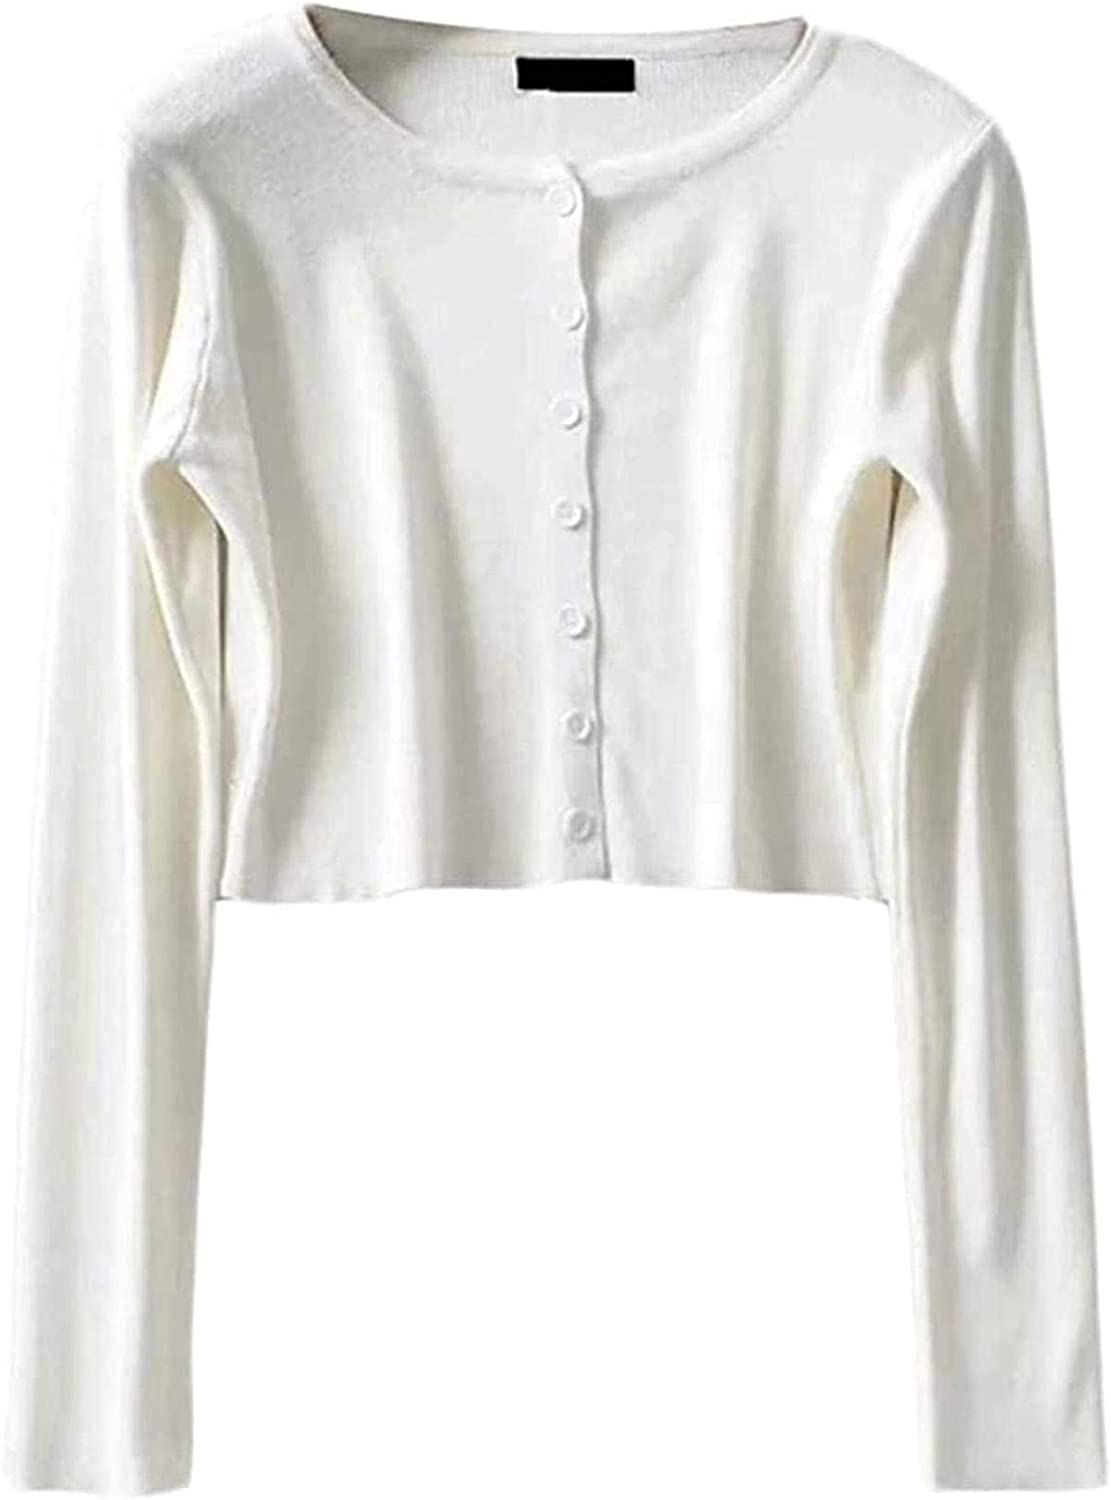 Womens Solid Color Button Down Sun Fashionable Protection Sleeve Tulsa Mall Knitte Long